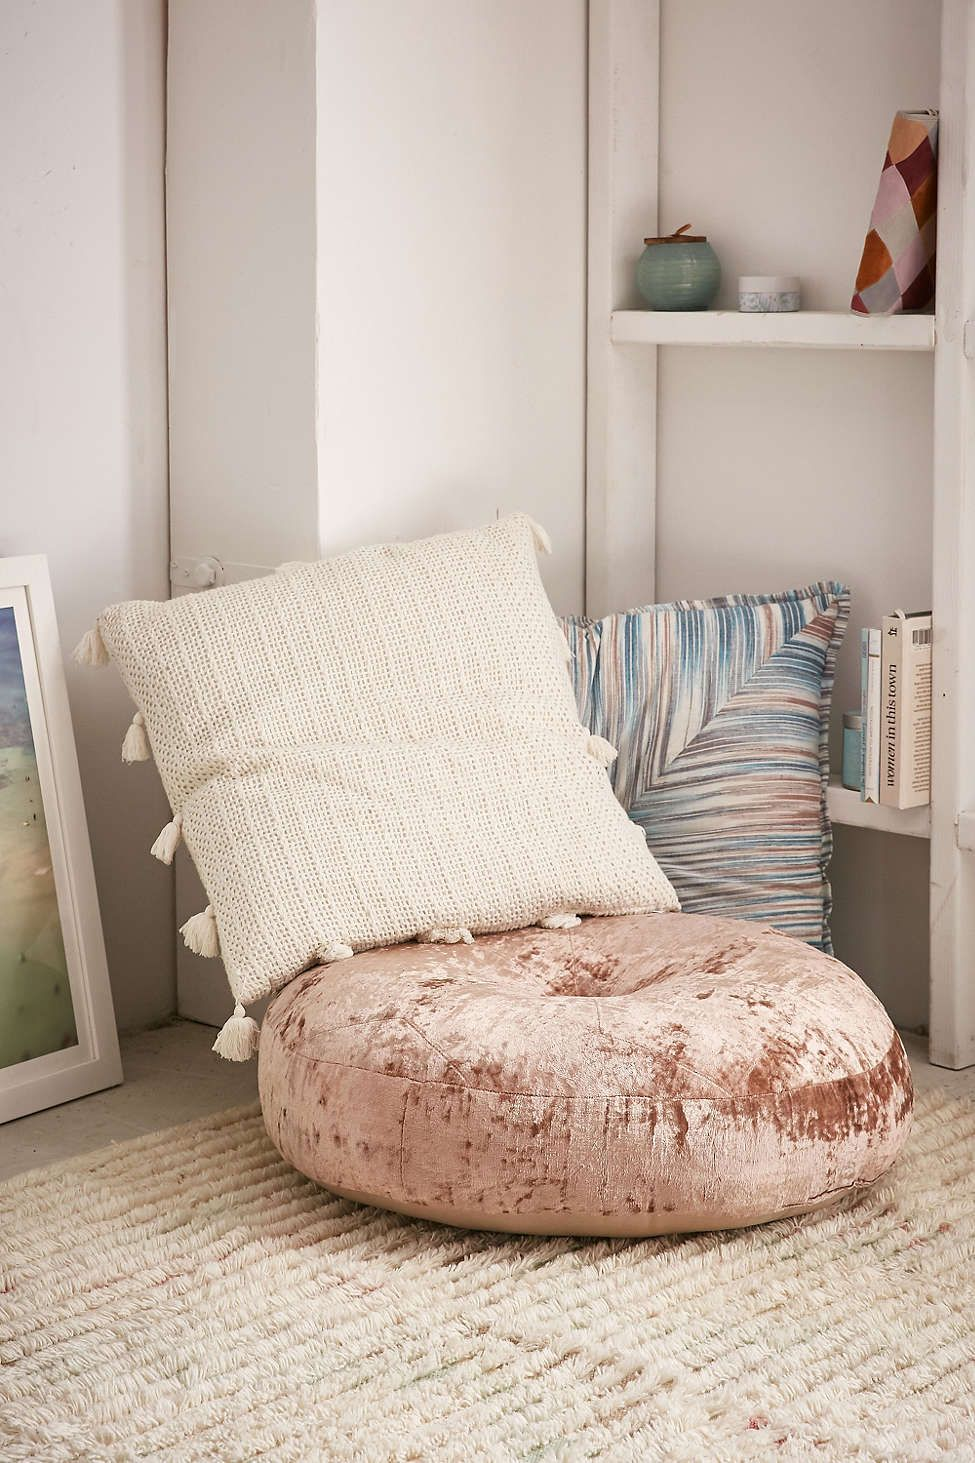 Room Decor, Home Decor, Bean Bag